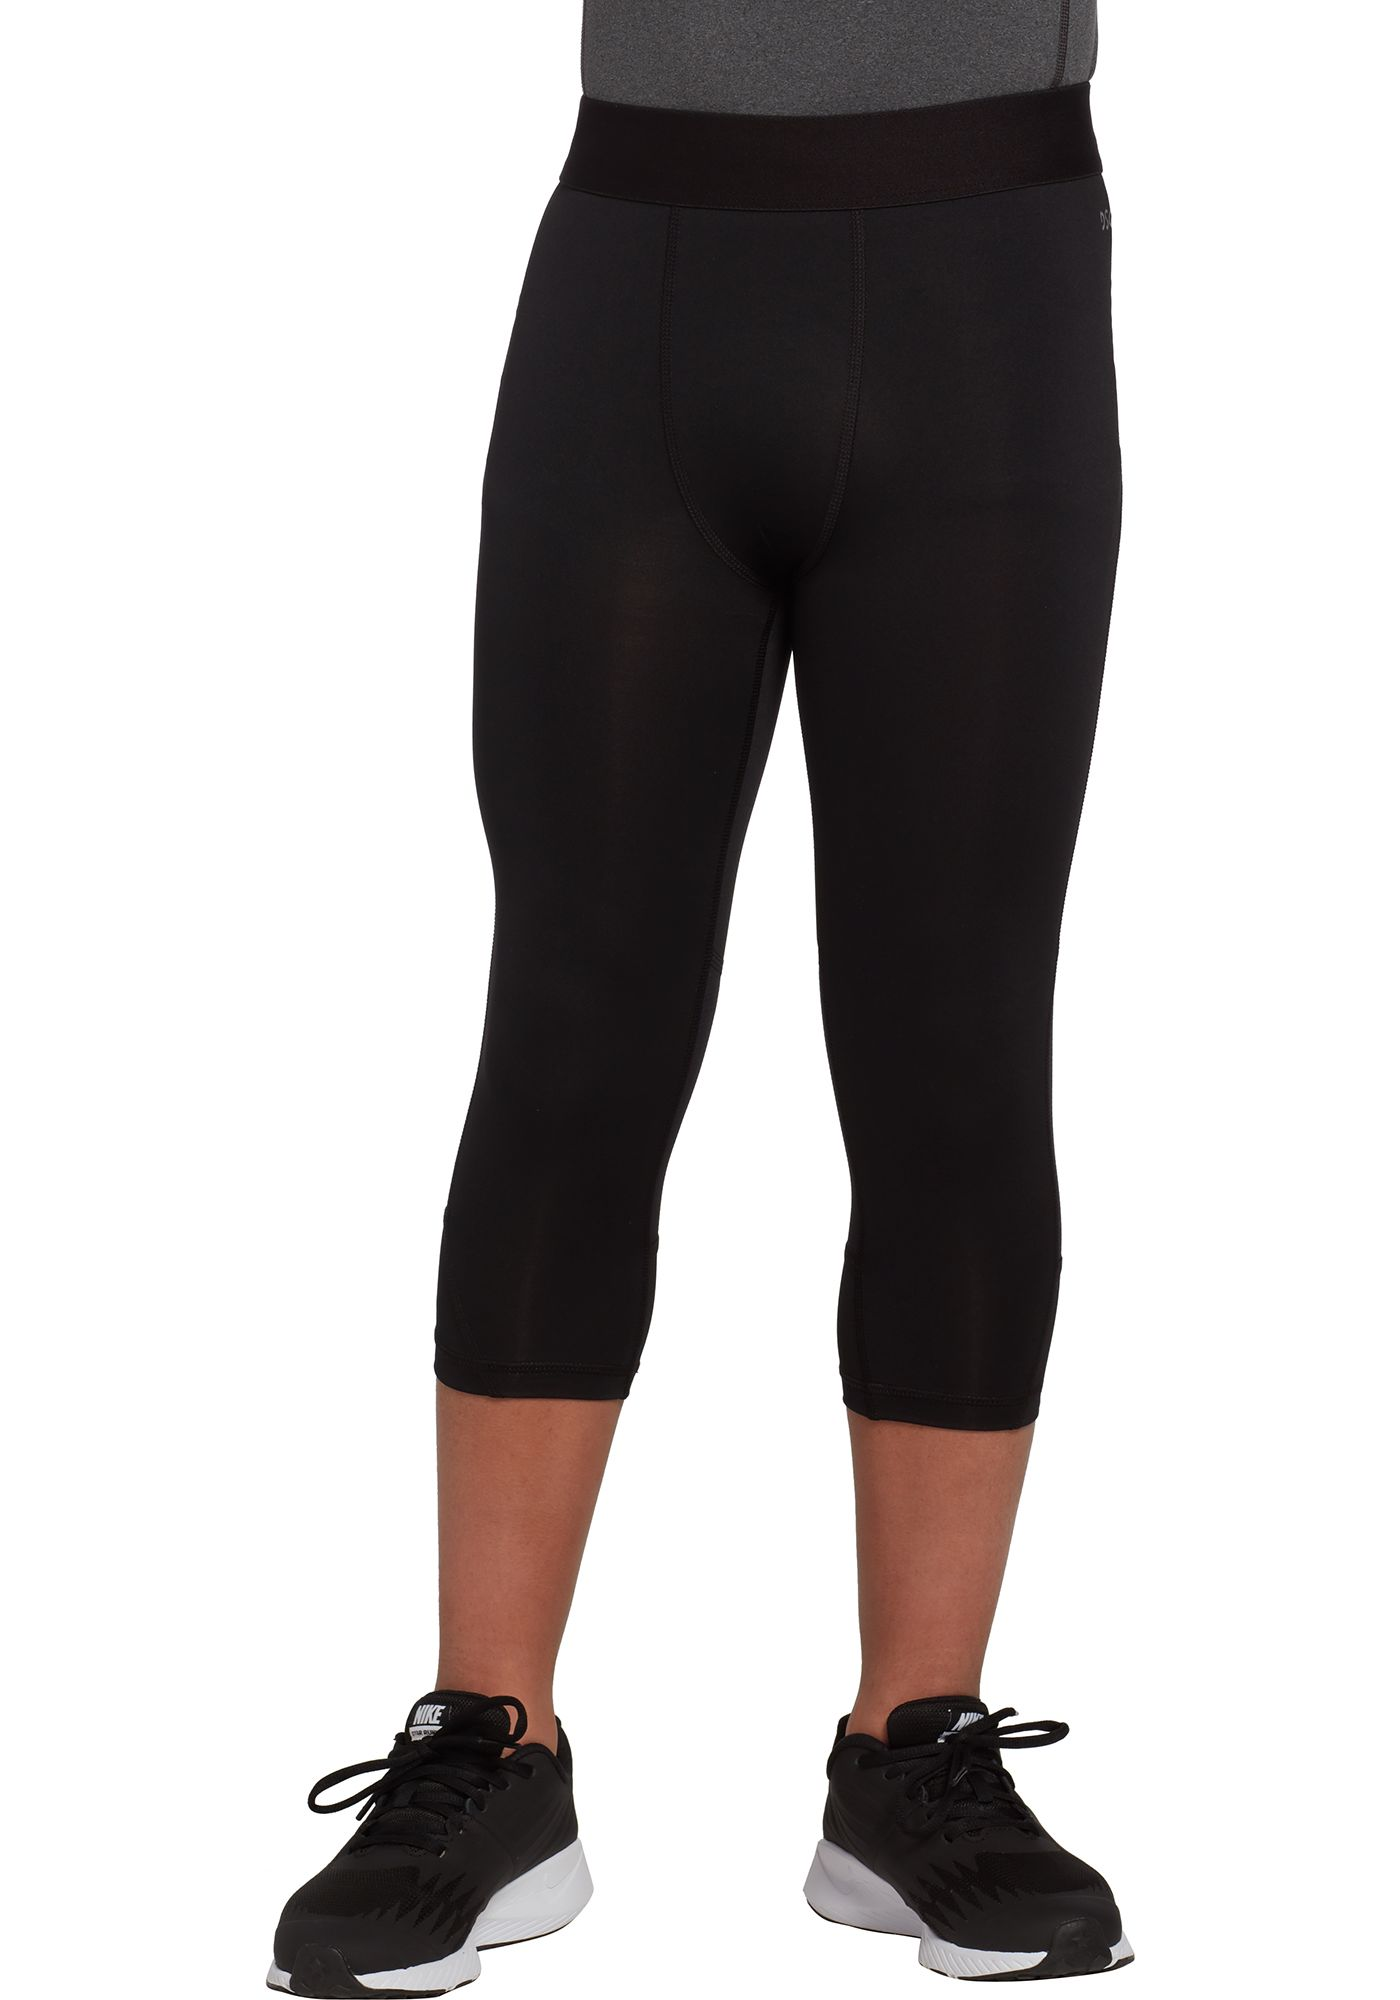 DSG Boys' 3/4 Compression Tights